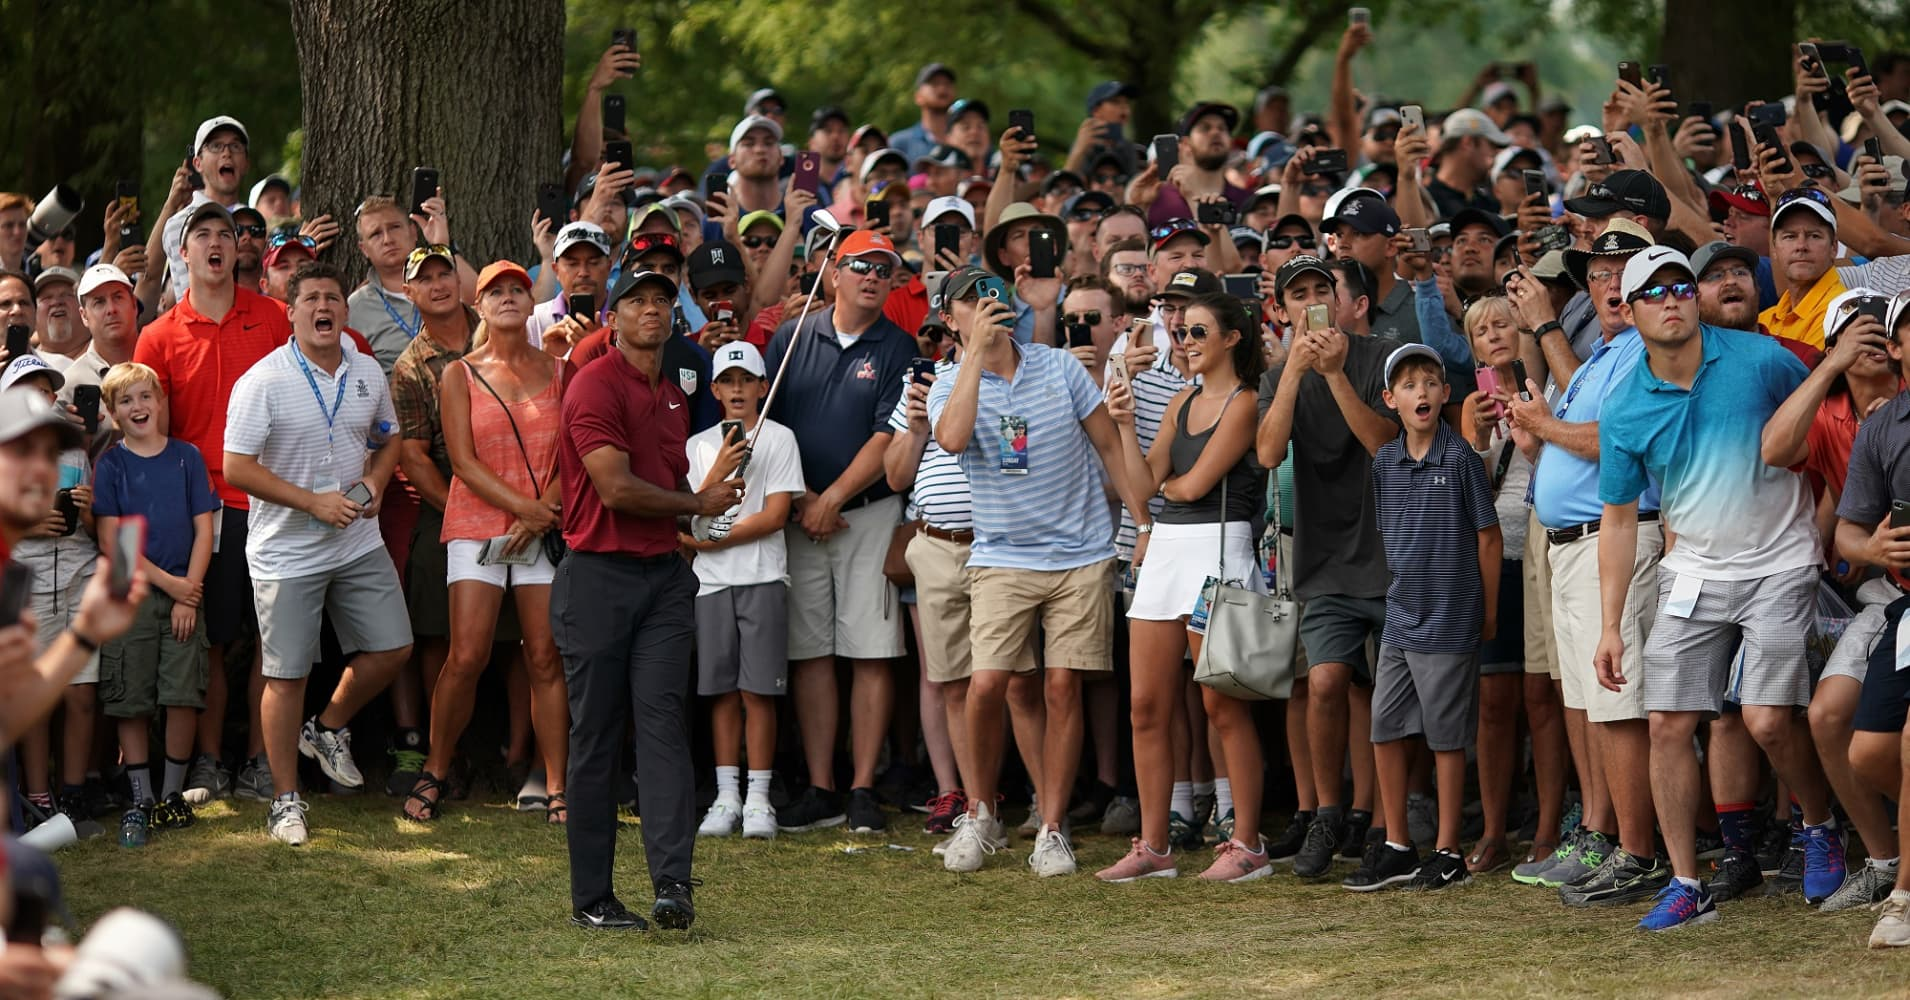 This tweet about PGA perfectly shows how smartphones have changed our lives